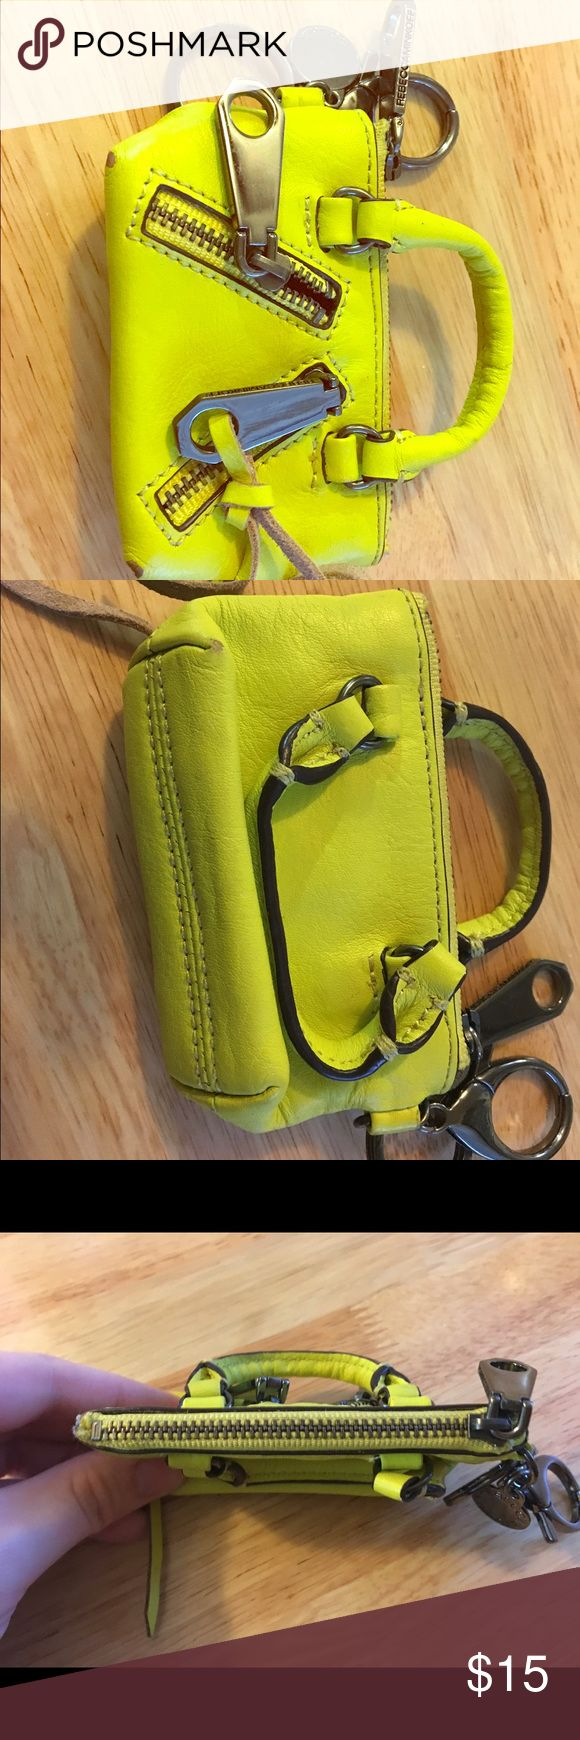 """Rebecca Minkoff """"Mini Moto"""" Coinpurse Good used condition. Neon yellow. Holds about 3 cards and ID plus coins. Some scuffing on corners (shown in pics). Rebecca Minkoff Bags"""